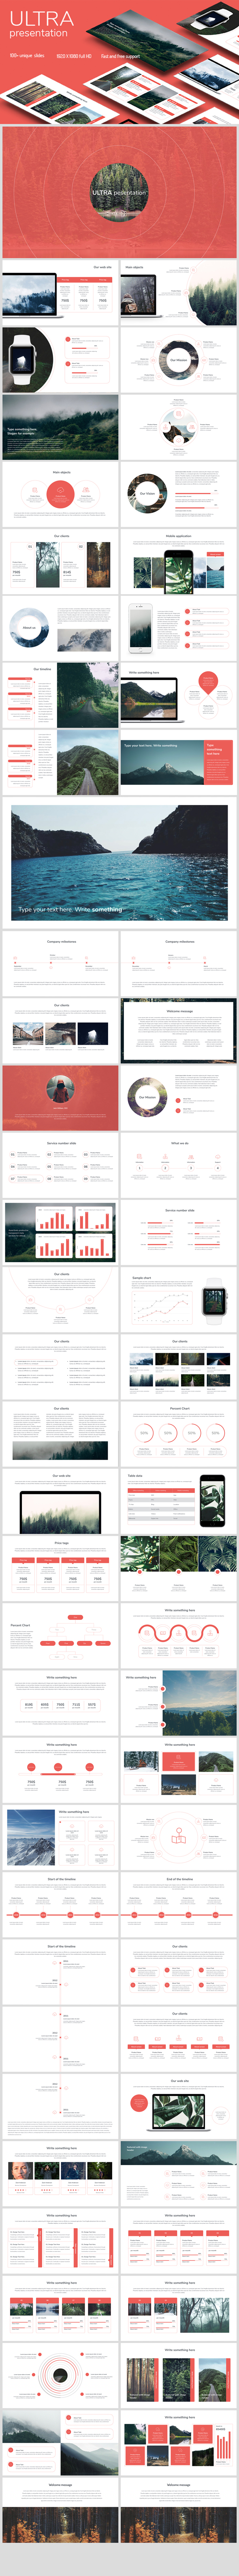 Clean Google Slides Template - Google Slides Presentation Templates